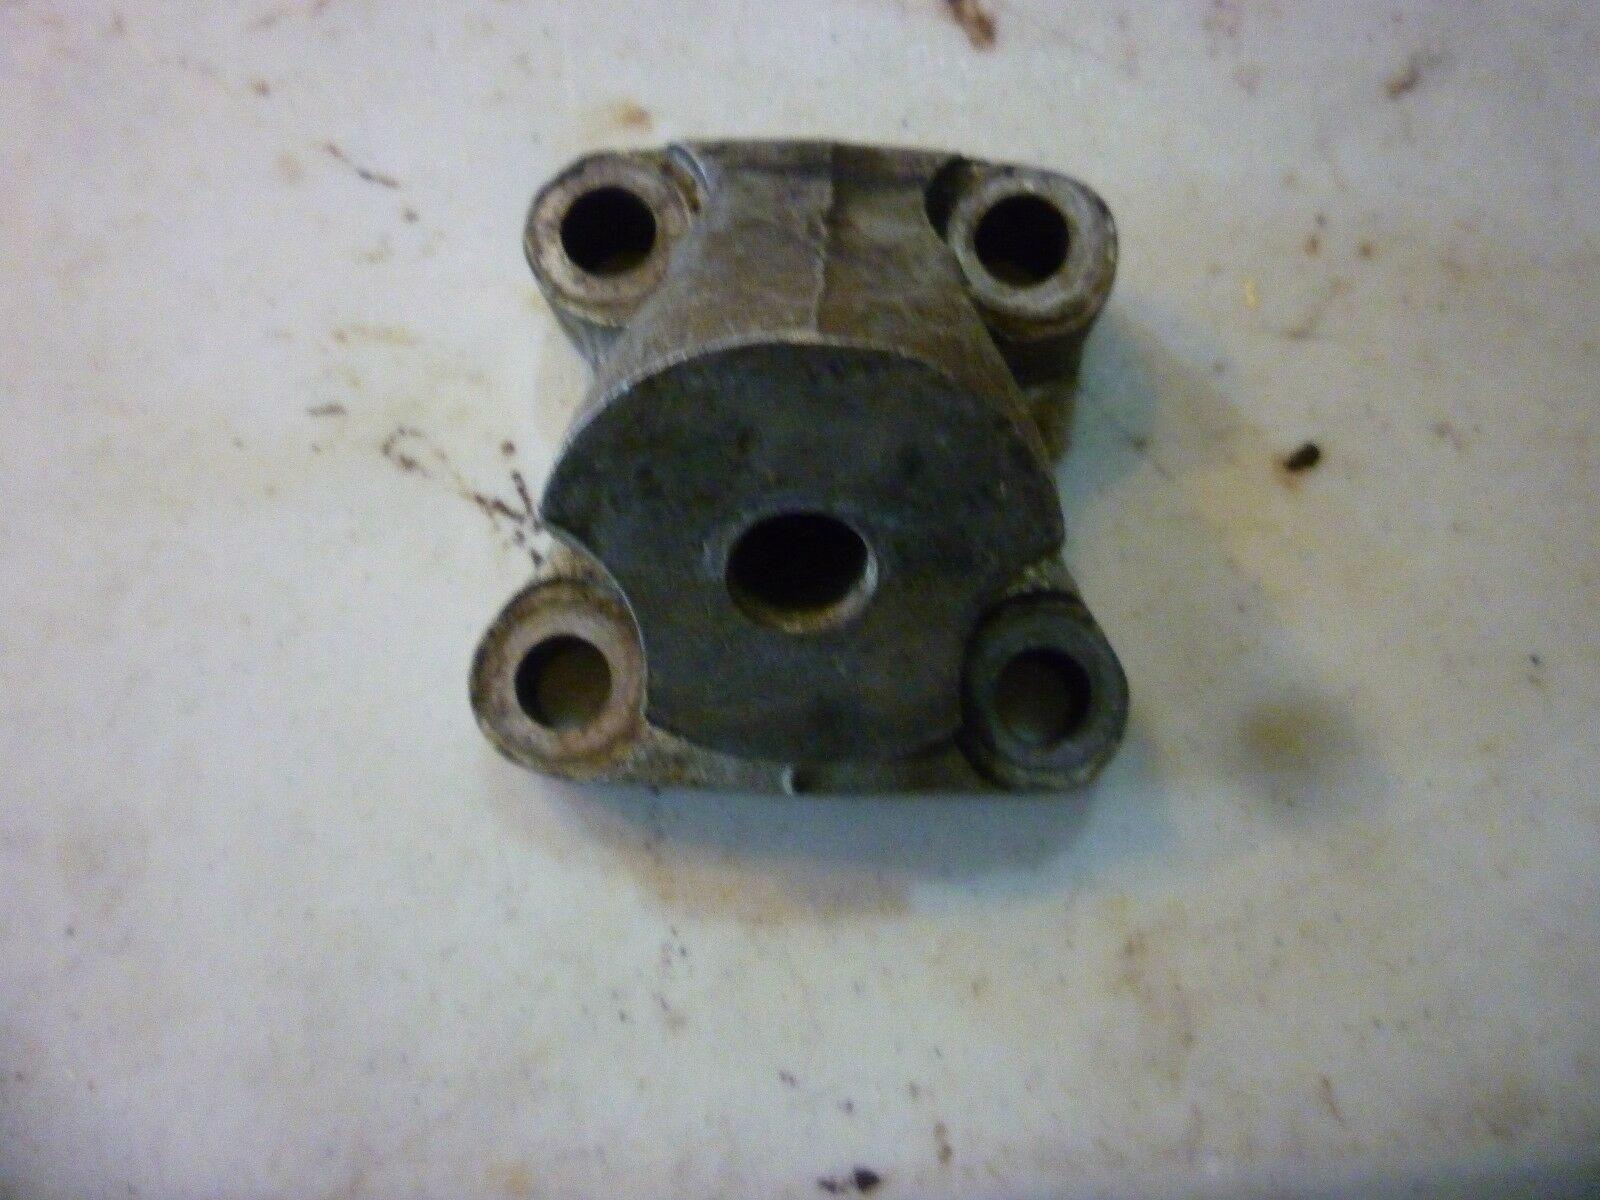 AIRCRAFT Engine Mounting Bracket Continental O-470 Series pn 539914